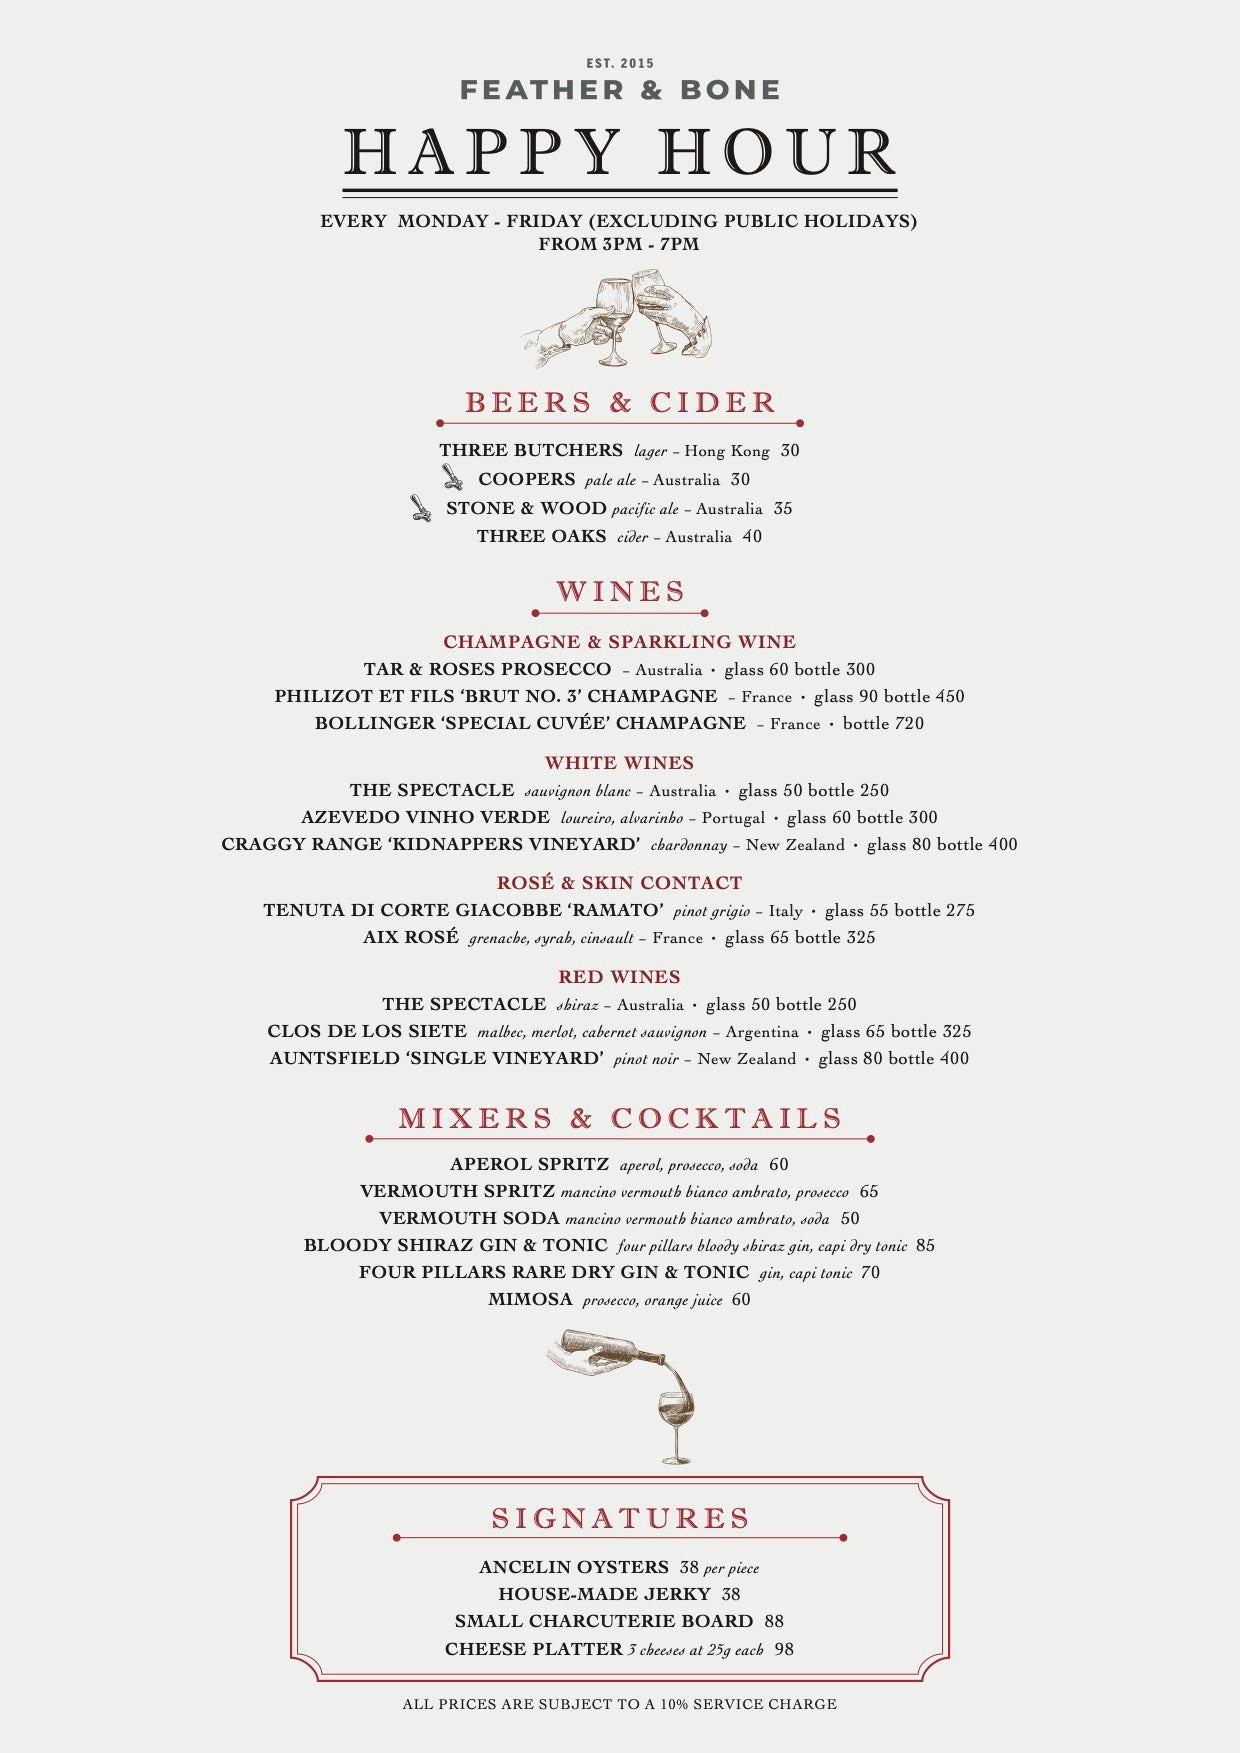 Feather & Bone Happy Hour Menu with Beers, Wines and Cocktails